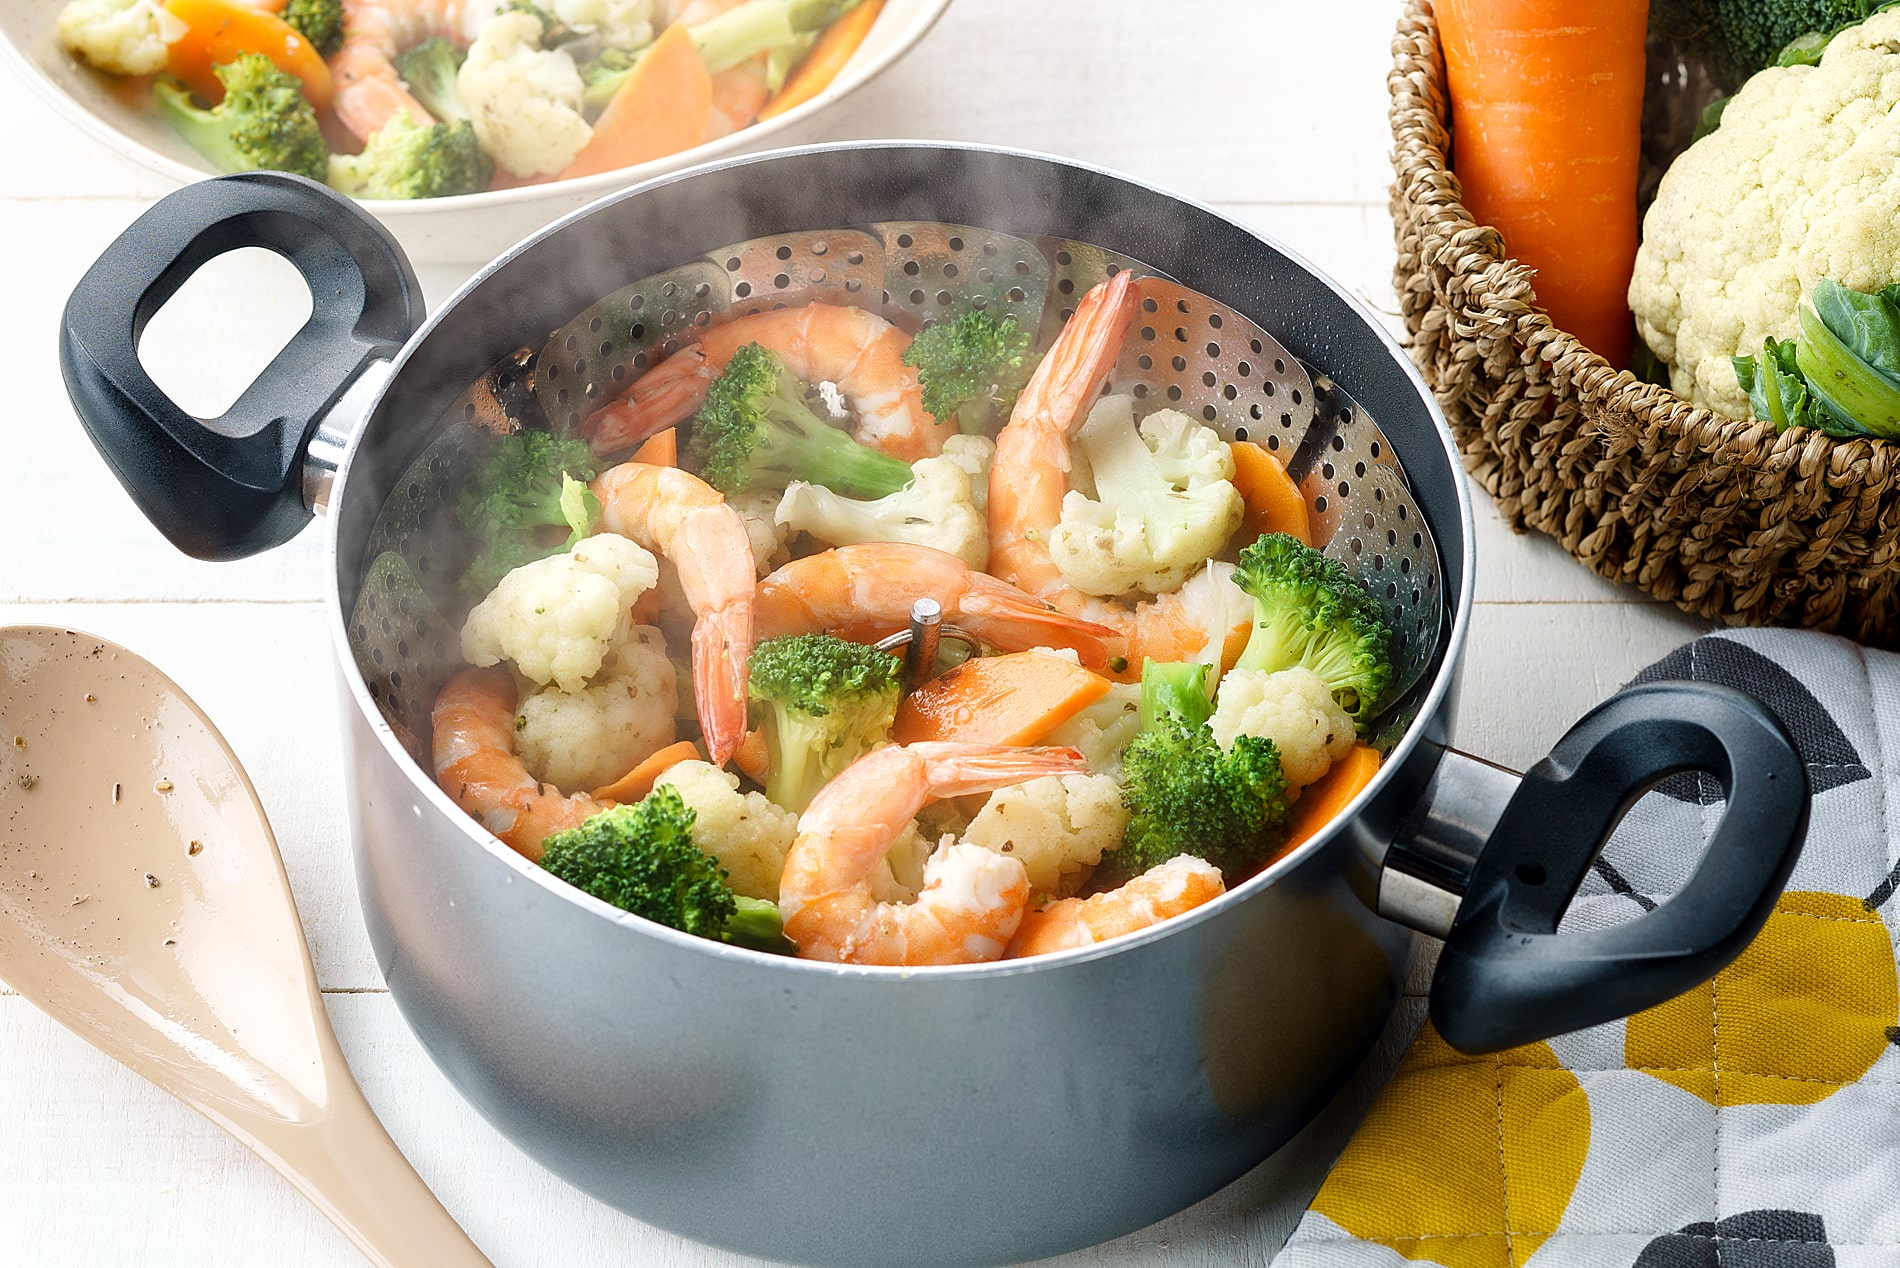 Steamed Shrimp and Vegetables